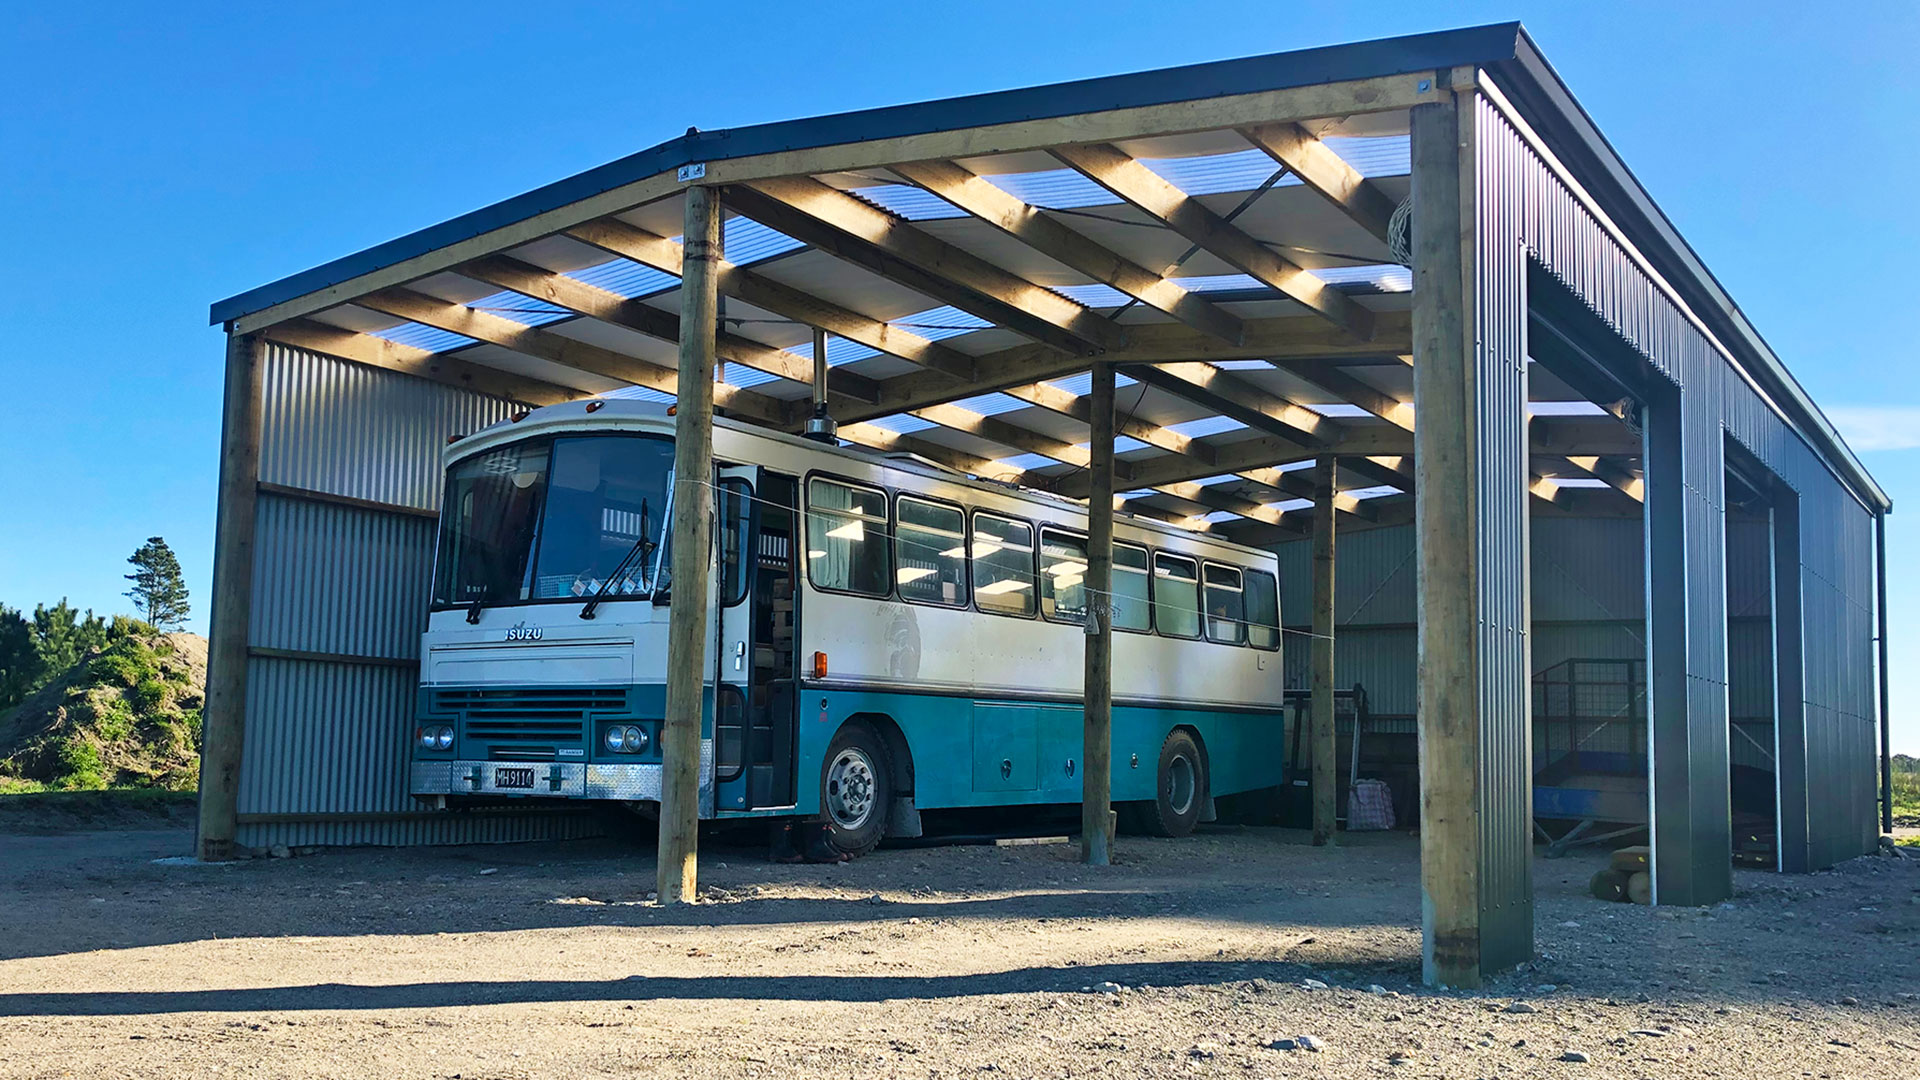 the bus parked in our barn